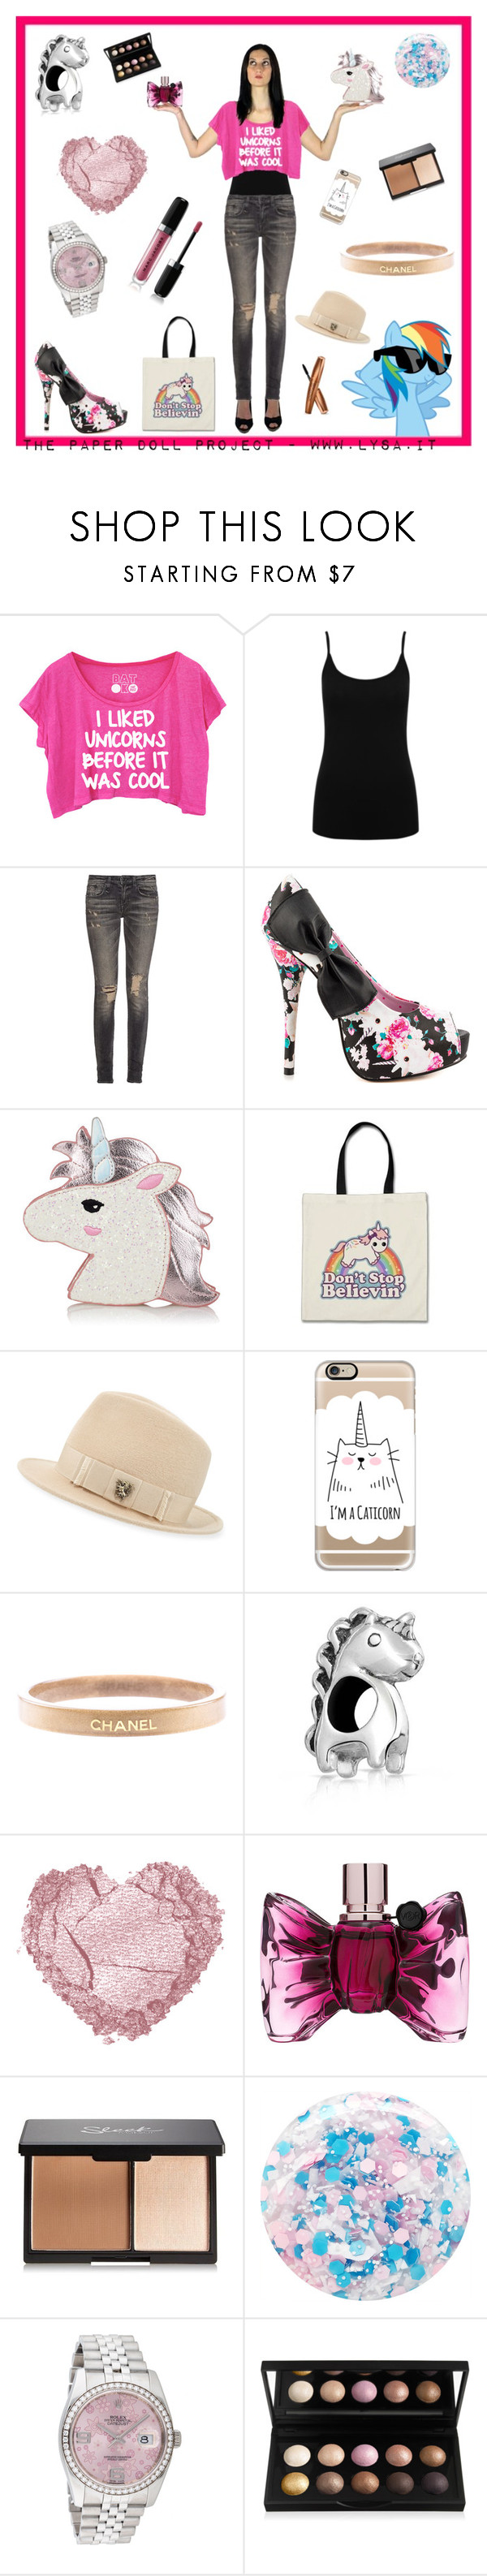 """The Paper Doll Project - Unicorn"" by lysa206 on Polyvore featuring moda, M&Co, R13, Iron Fist, Philip Treacy, Casetify, Chanel, Bling Jewelry, Viktor & Rolf e Nails Inc."